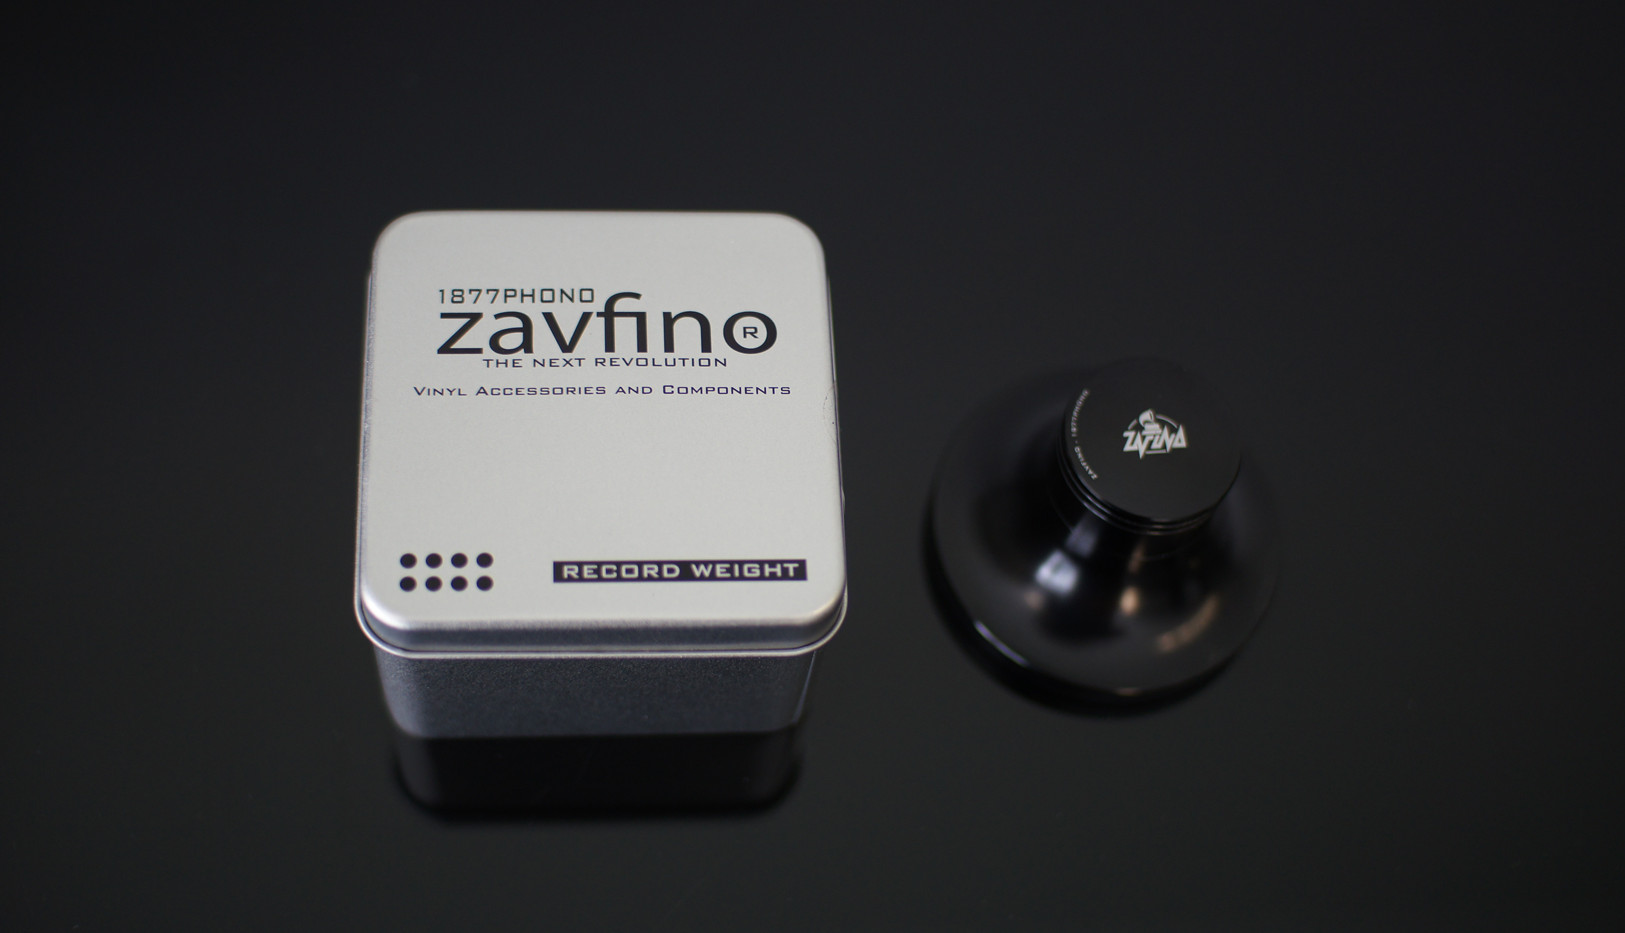 Zavfino Record Weight